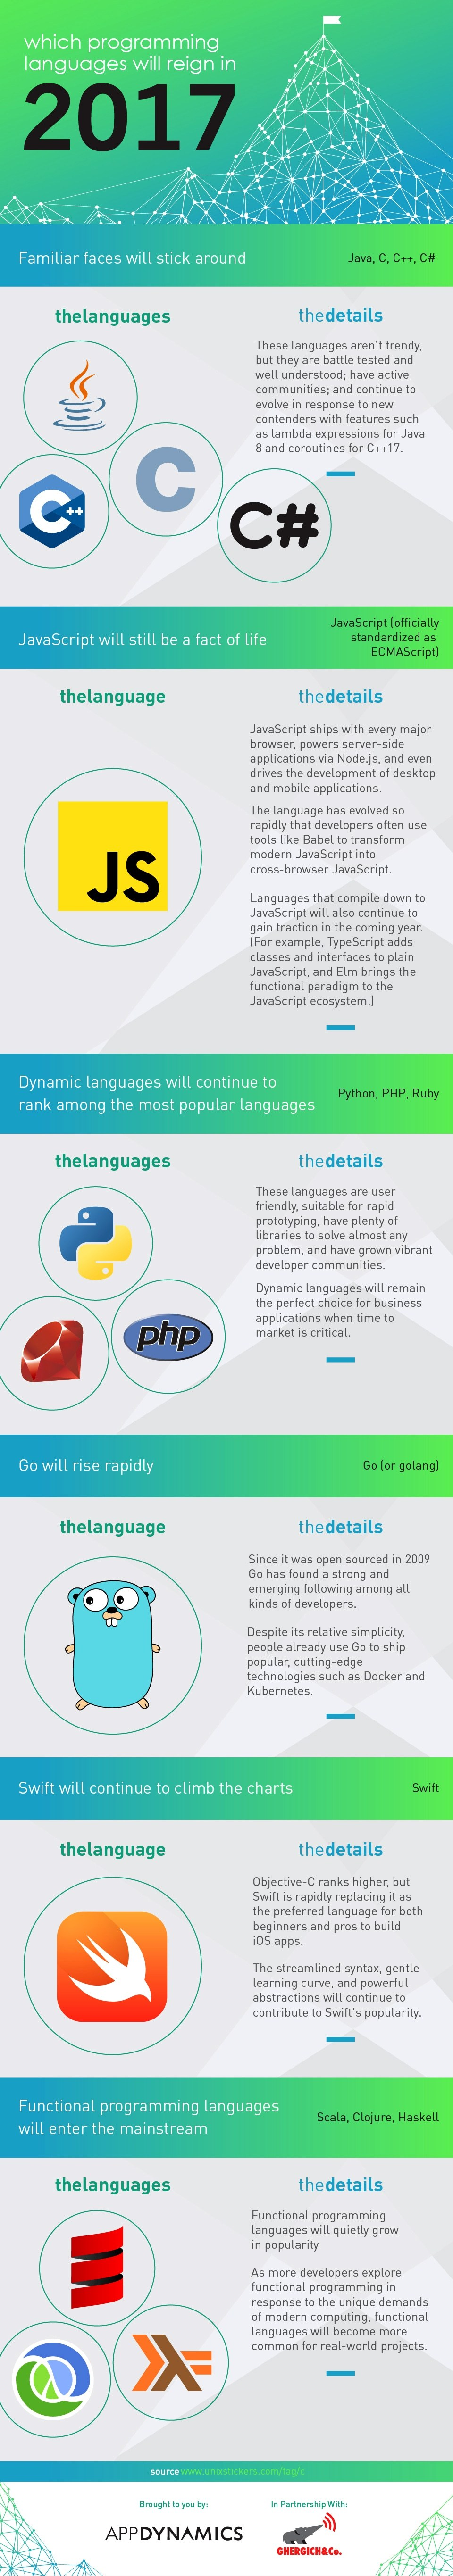 which-programming-language-will-reign-in-2017.jpg